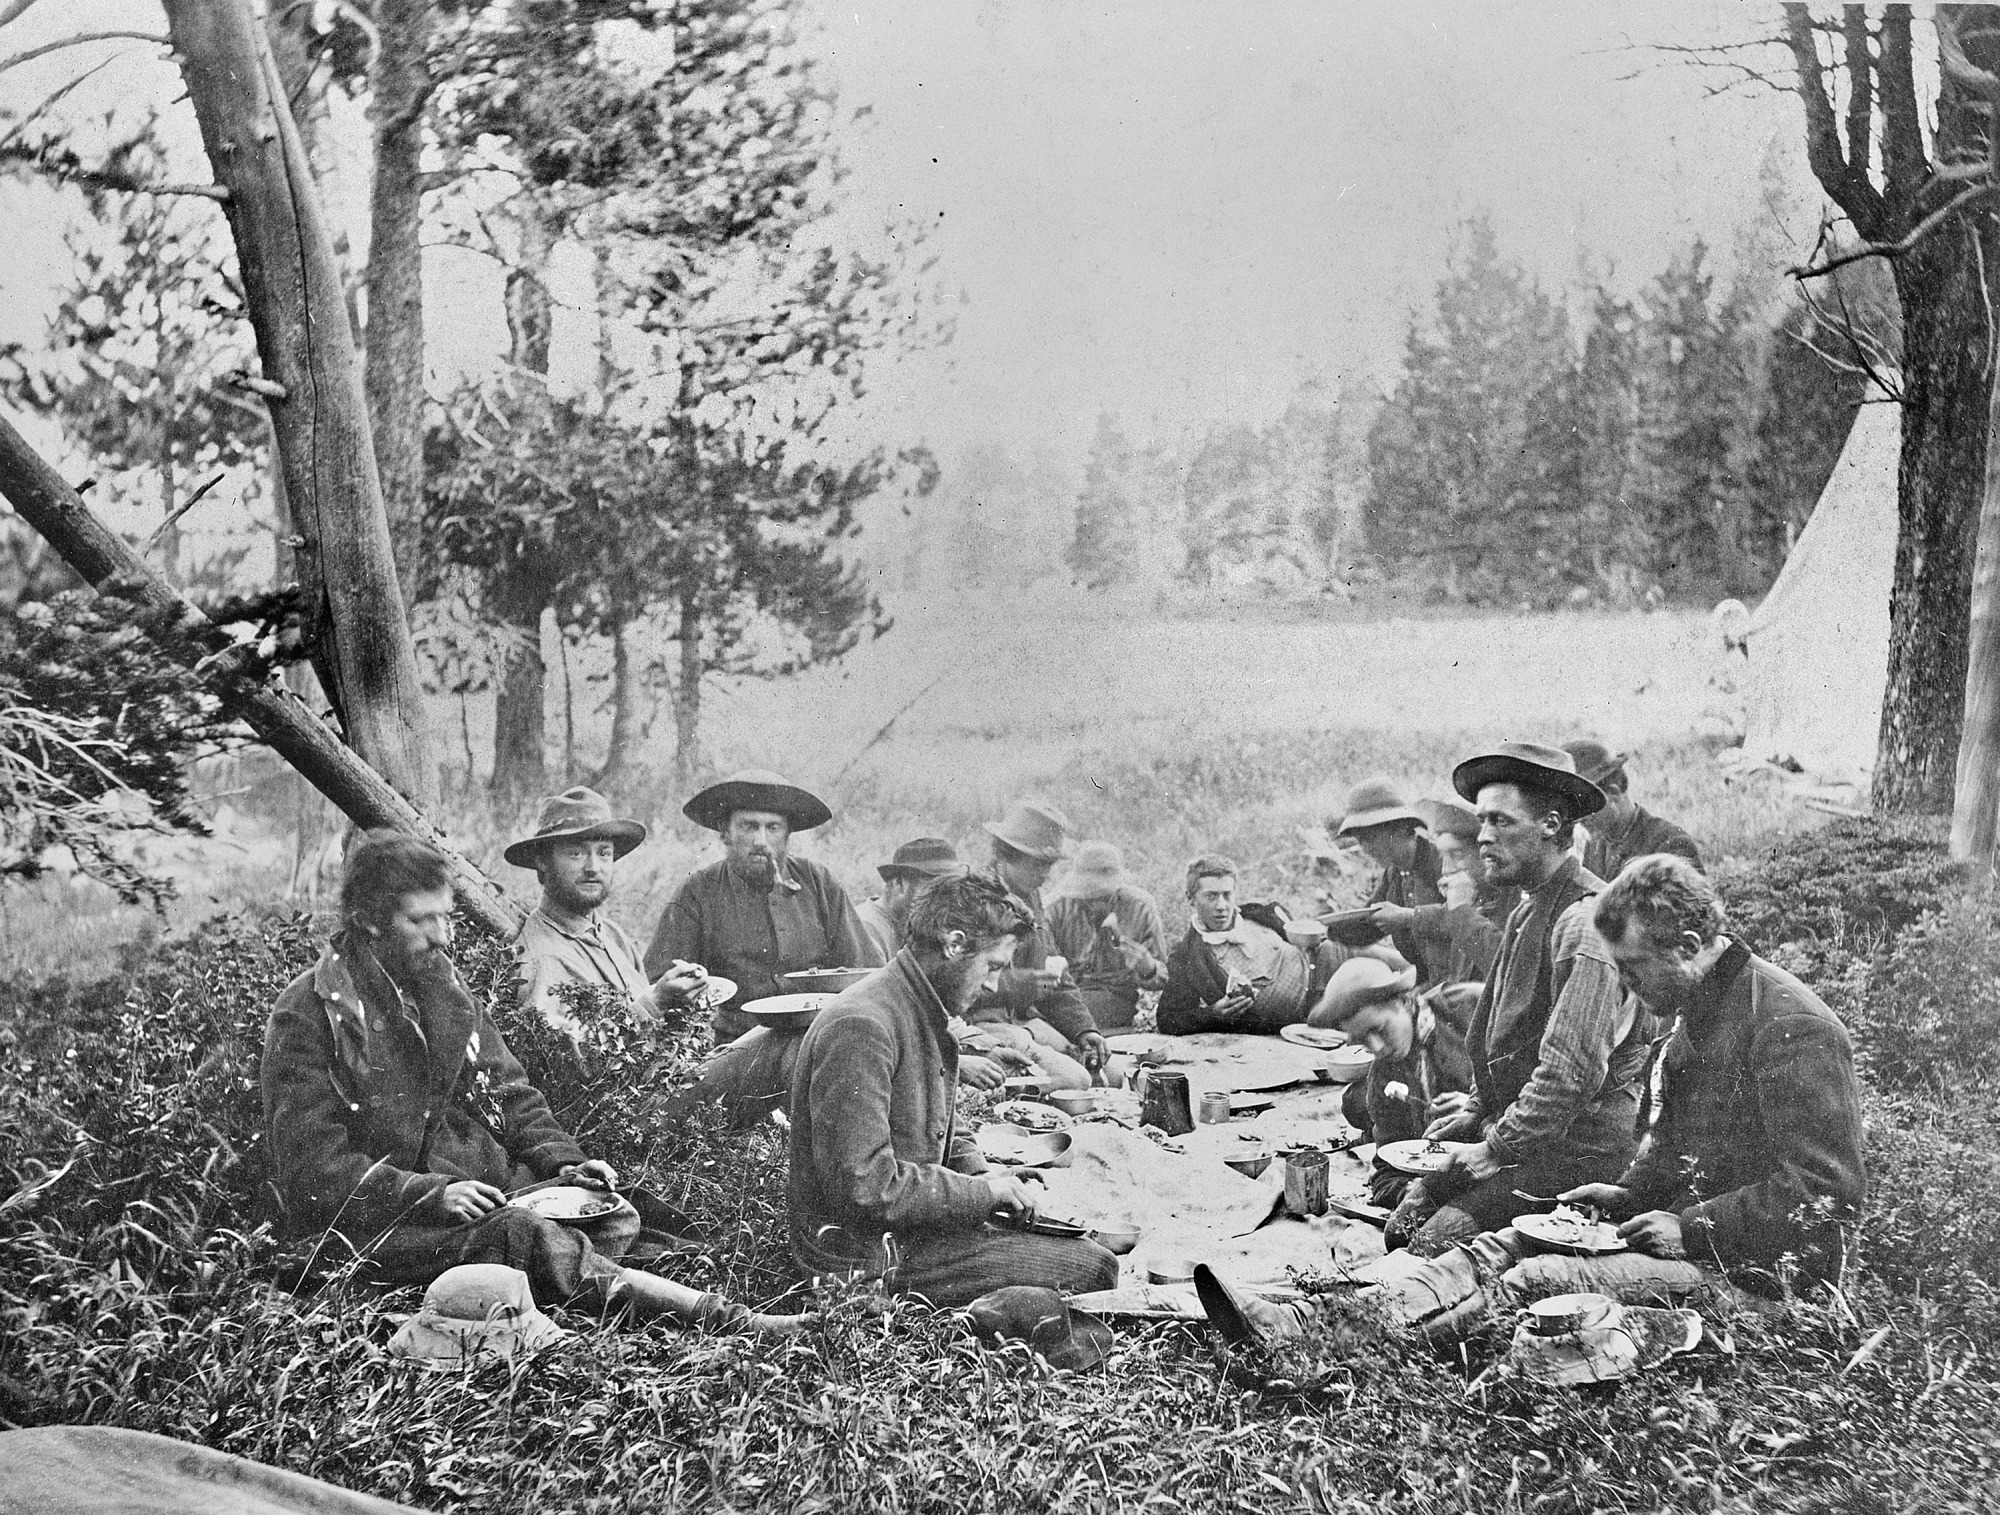 Hayden Survey Party at Dinner in 1872, 1872, Smithsonian Archives - History Div, SA-7.